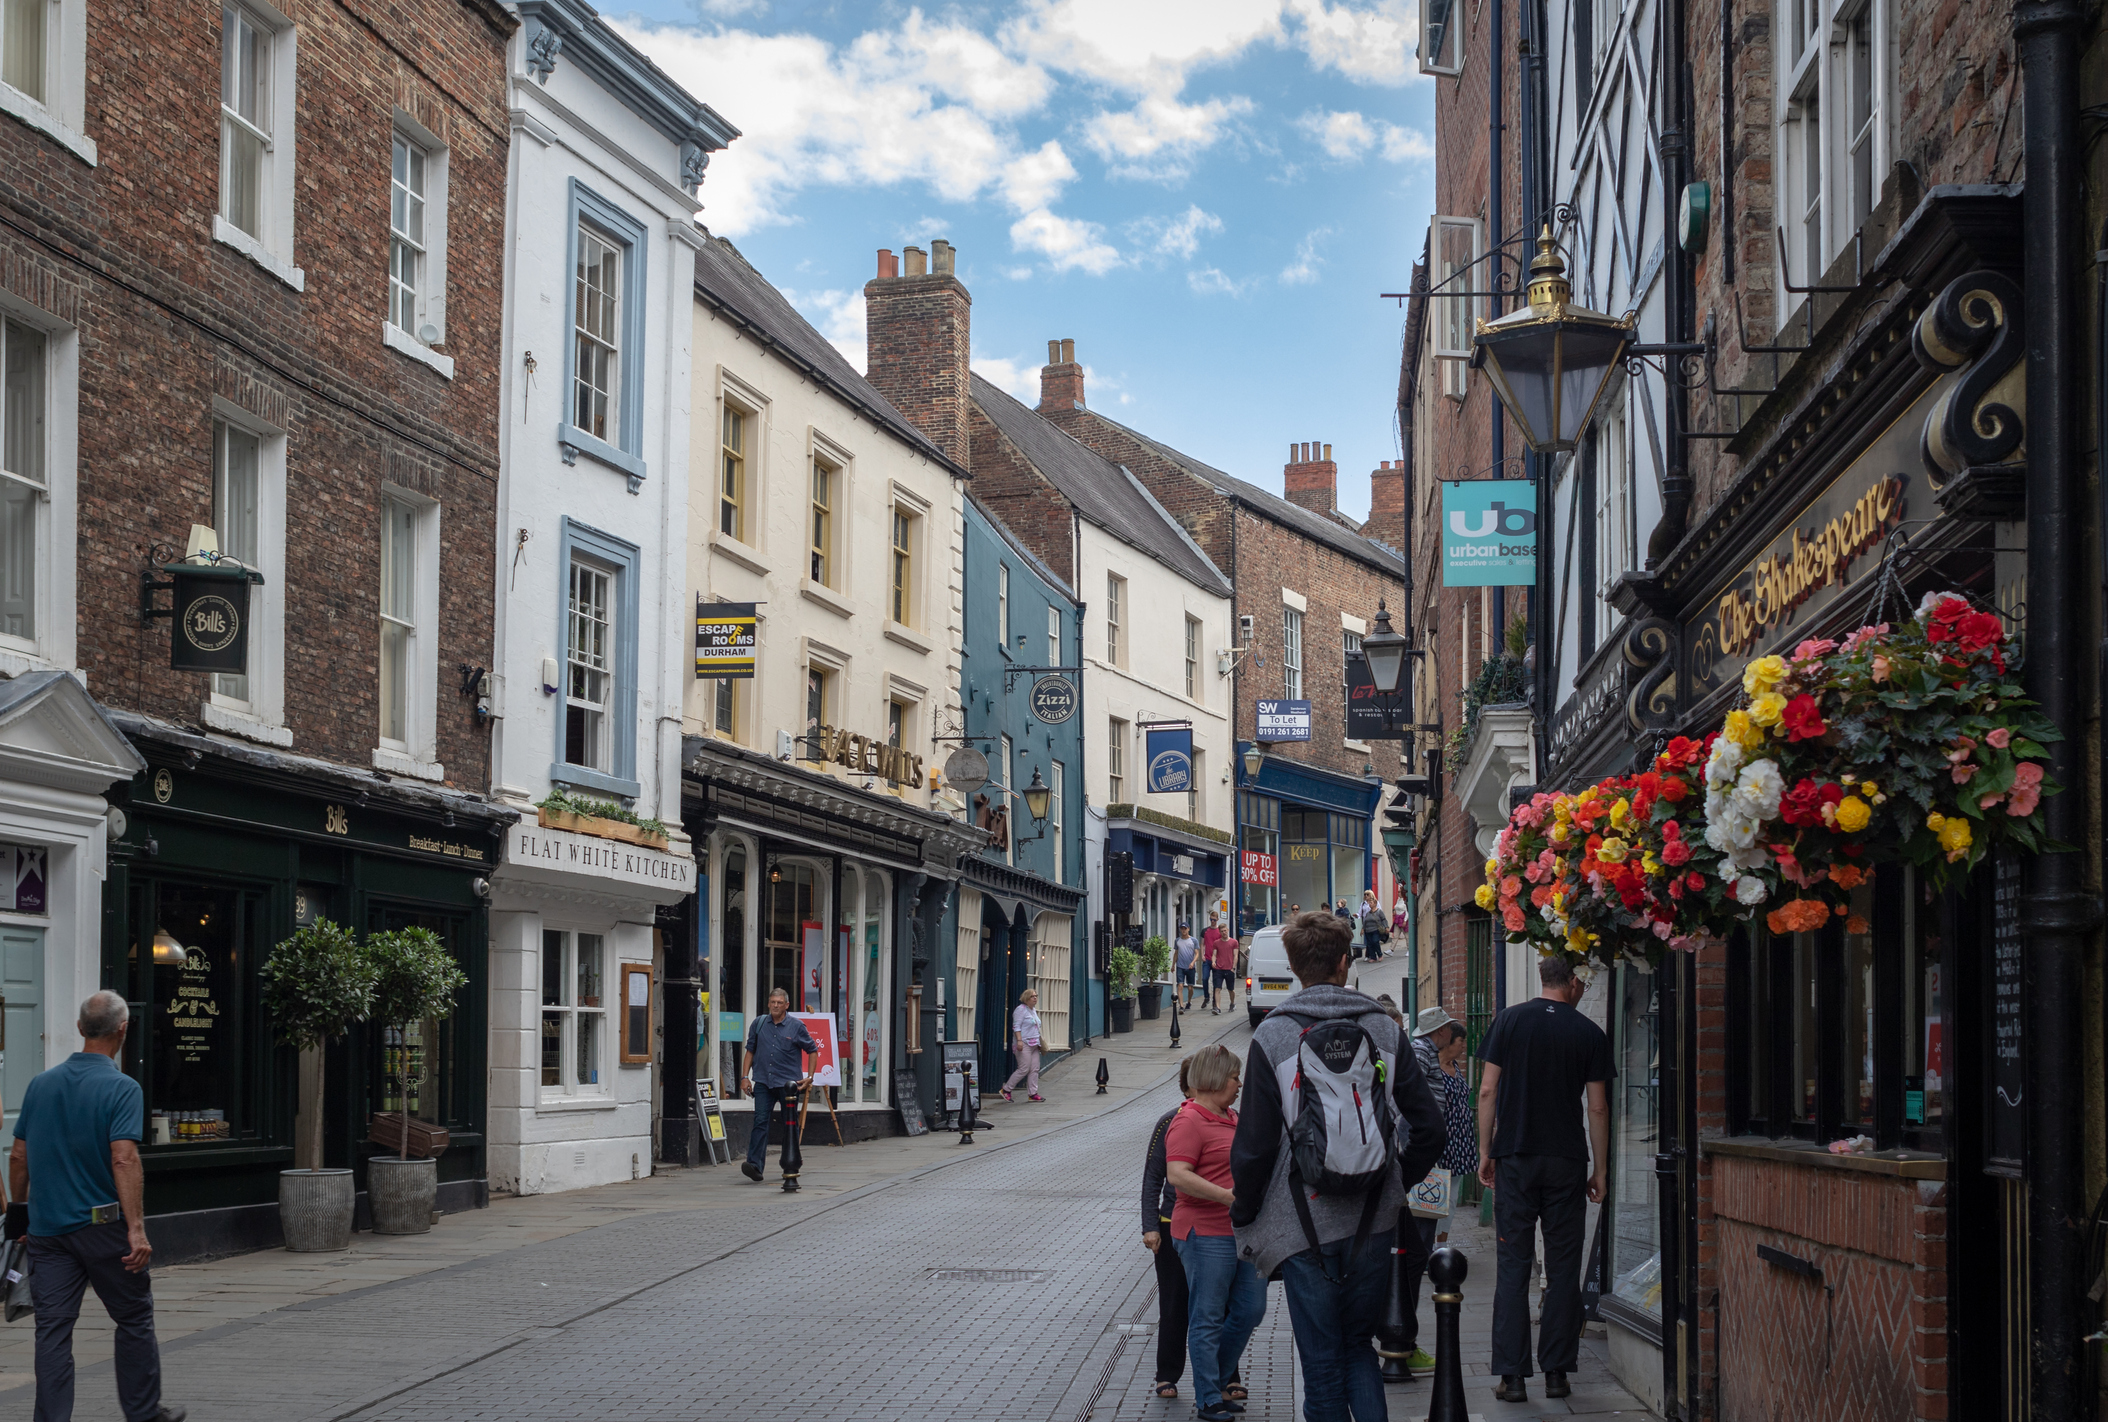 Shopping street in Durham, United Kingdom